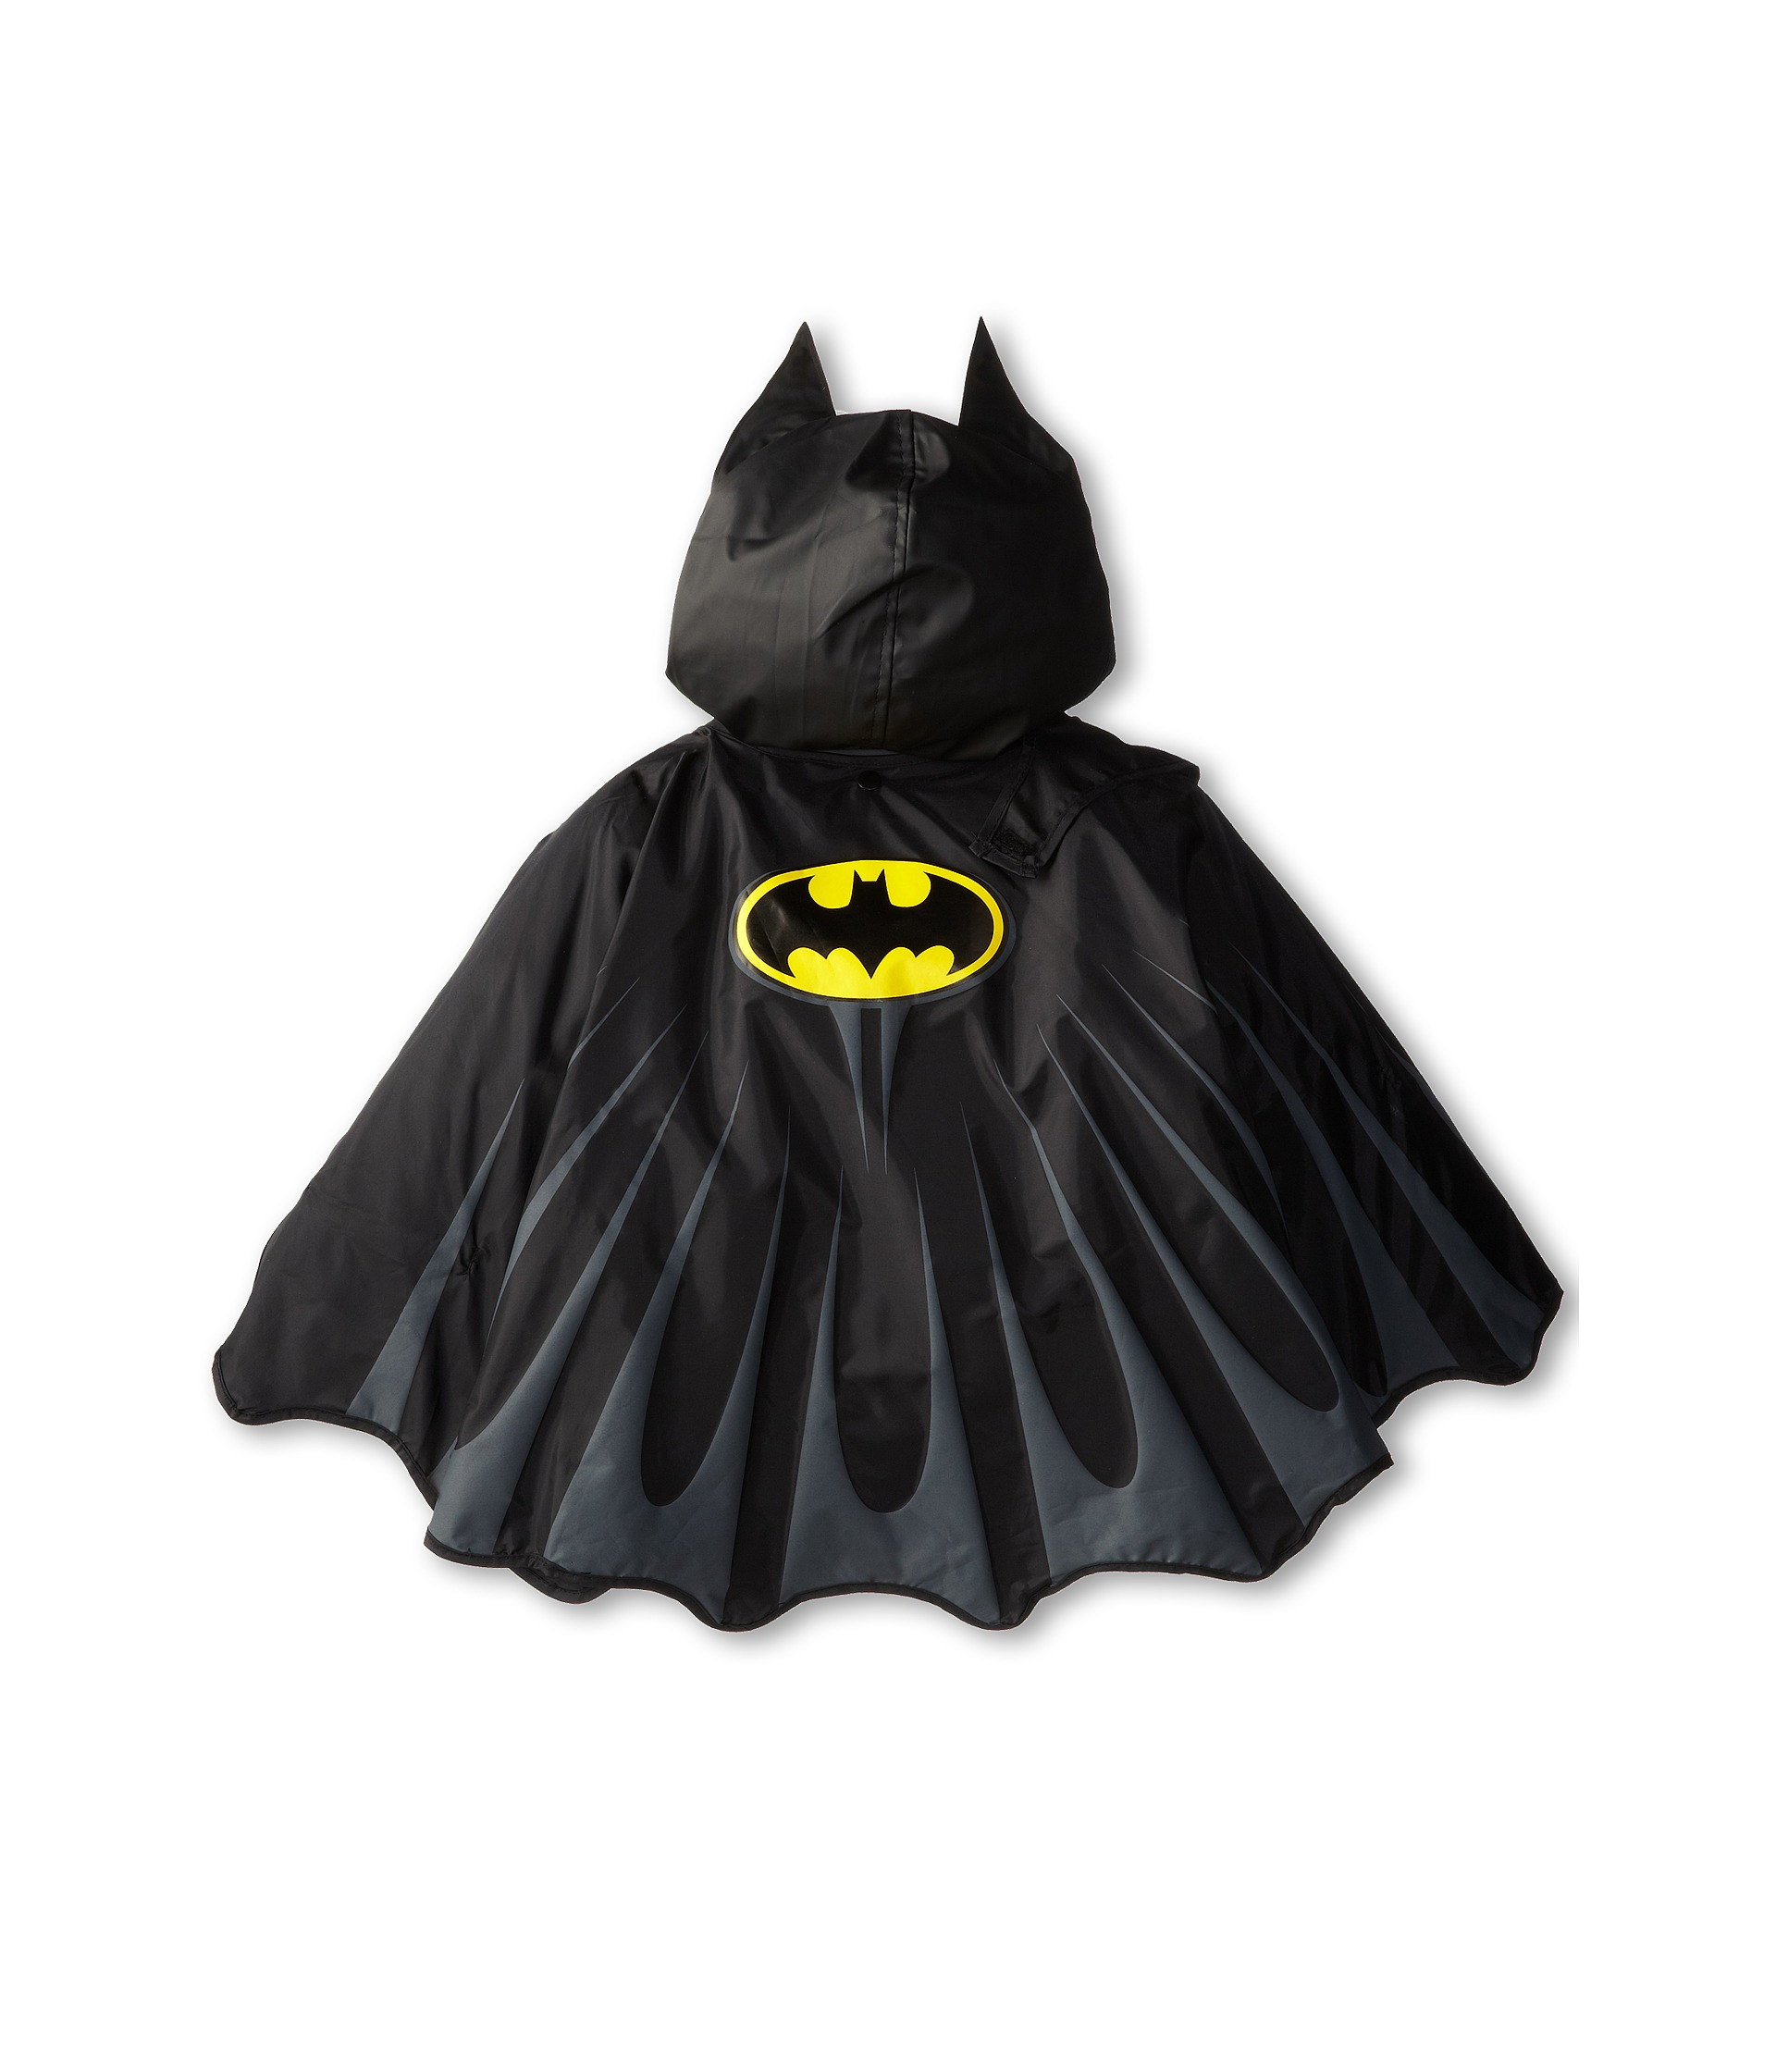 Kids get bored with new toys in days but this is something they will love ever time you take them out in rain. There are other raincoats available too like Superman, Spiderman, dinosaur, pirate, hello kitty, butterfly and many more.